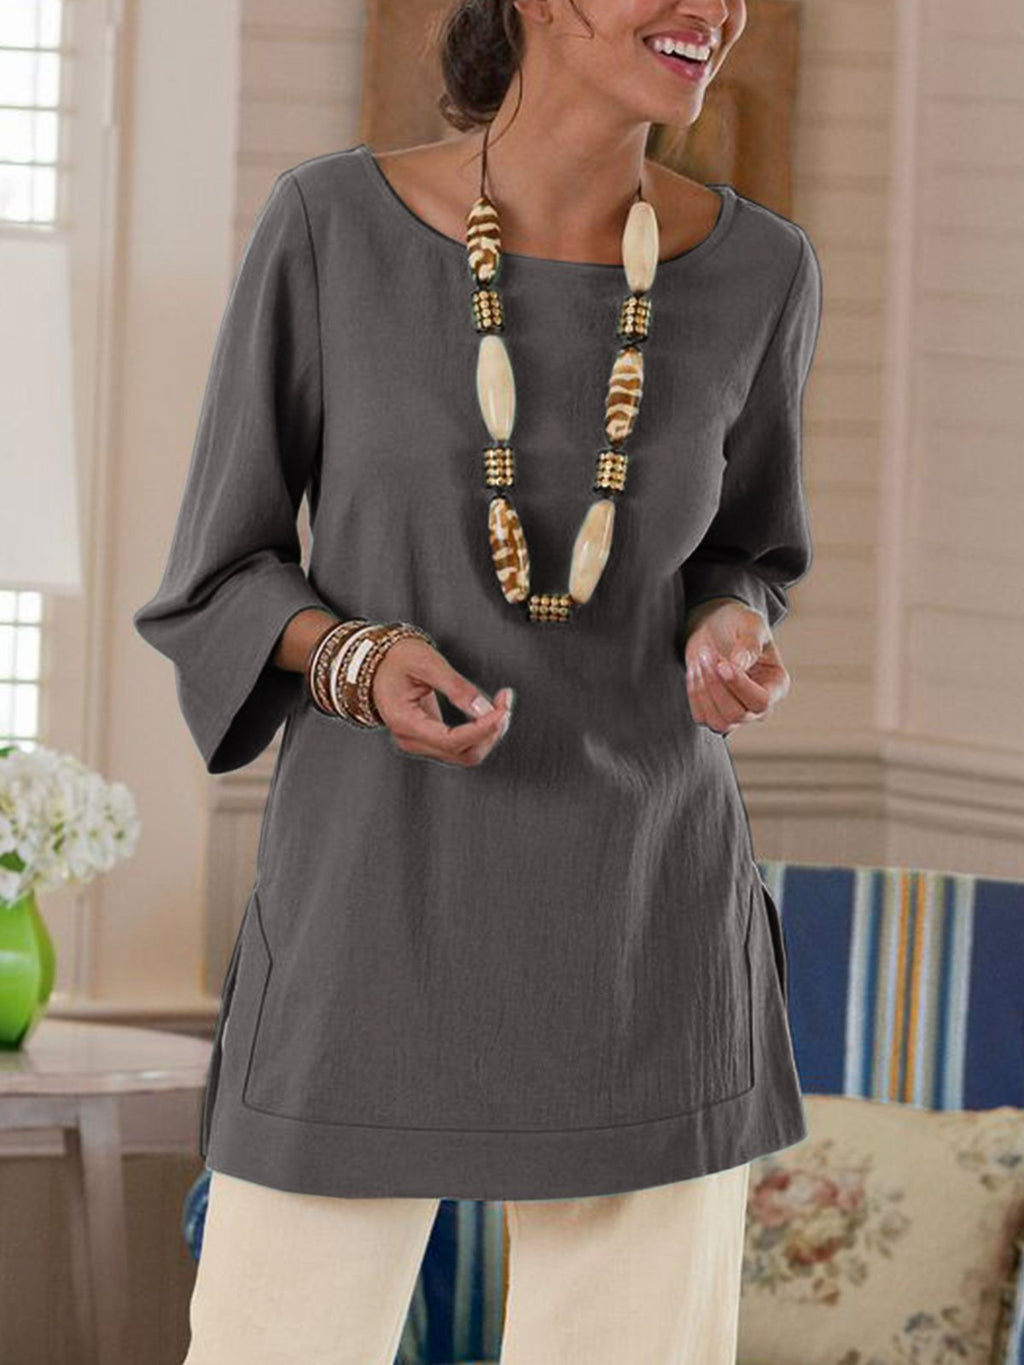 Plus Size Women 3/4 Sleeve V-neck Casual Blouse